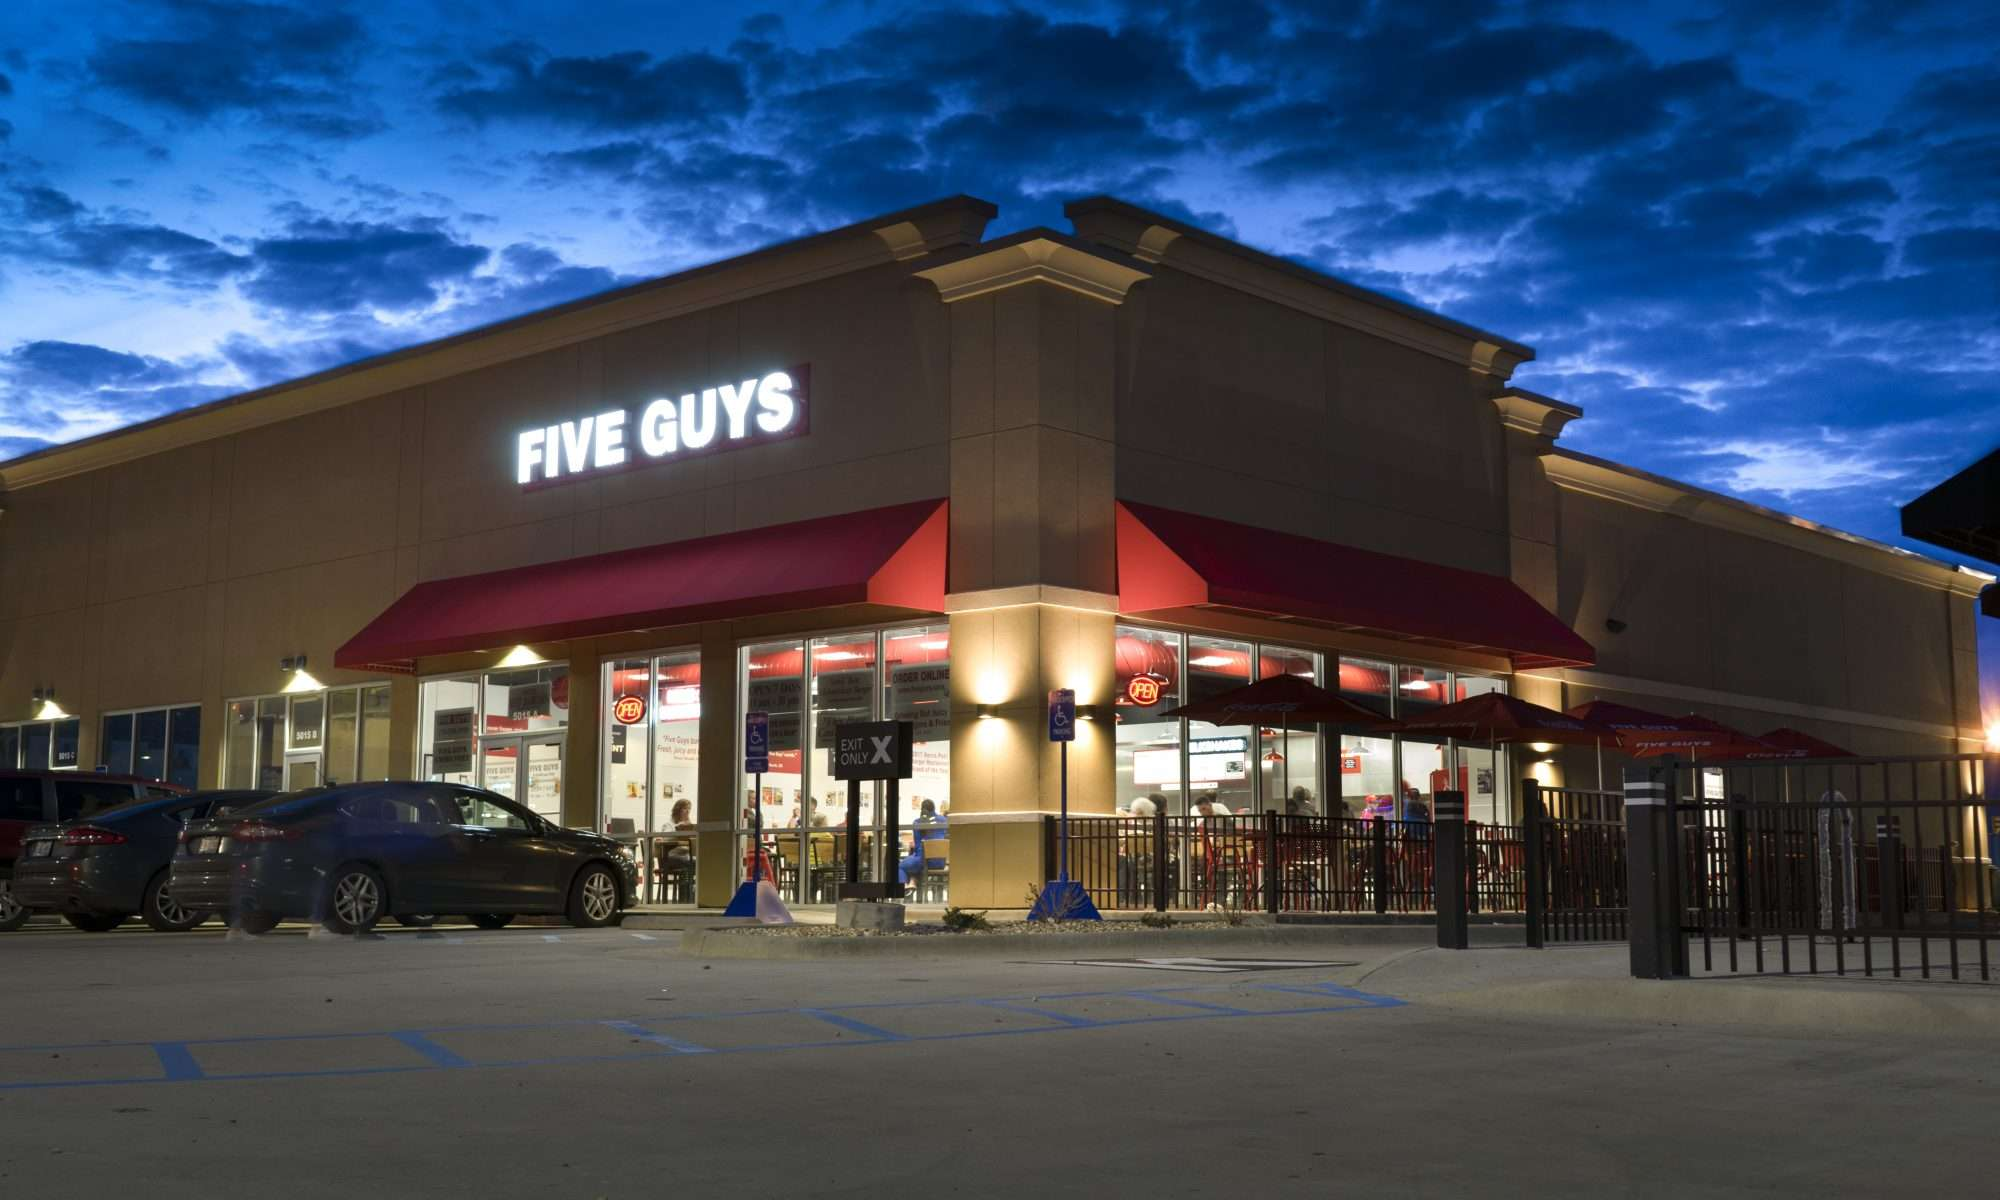 Feb 19, 2018 - Five Guys Burger Fries crowd Sunday eventing in Paducah KY/craigcurriephotography.com